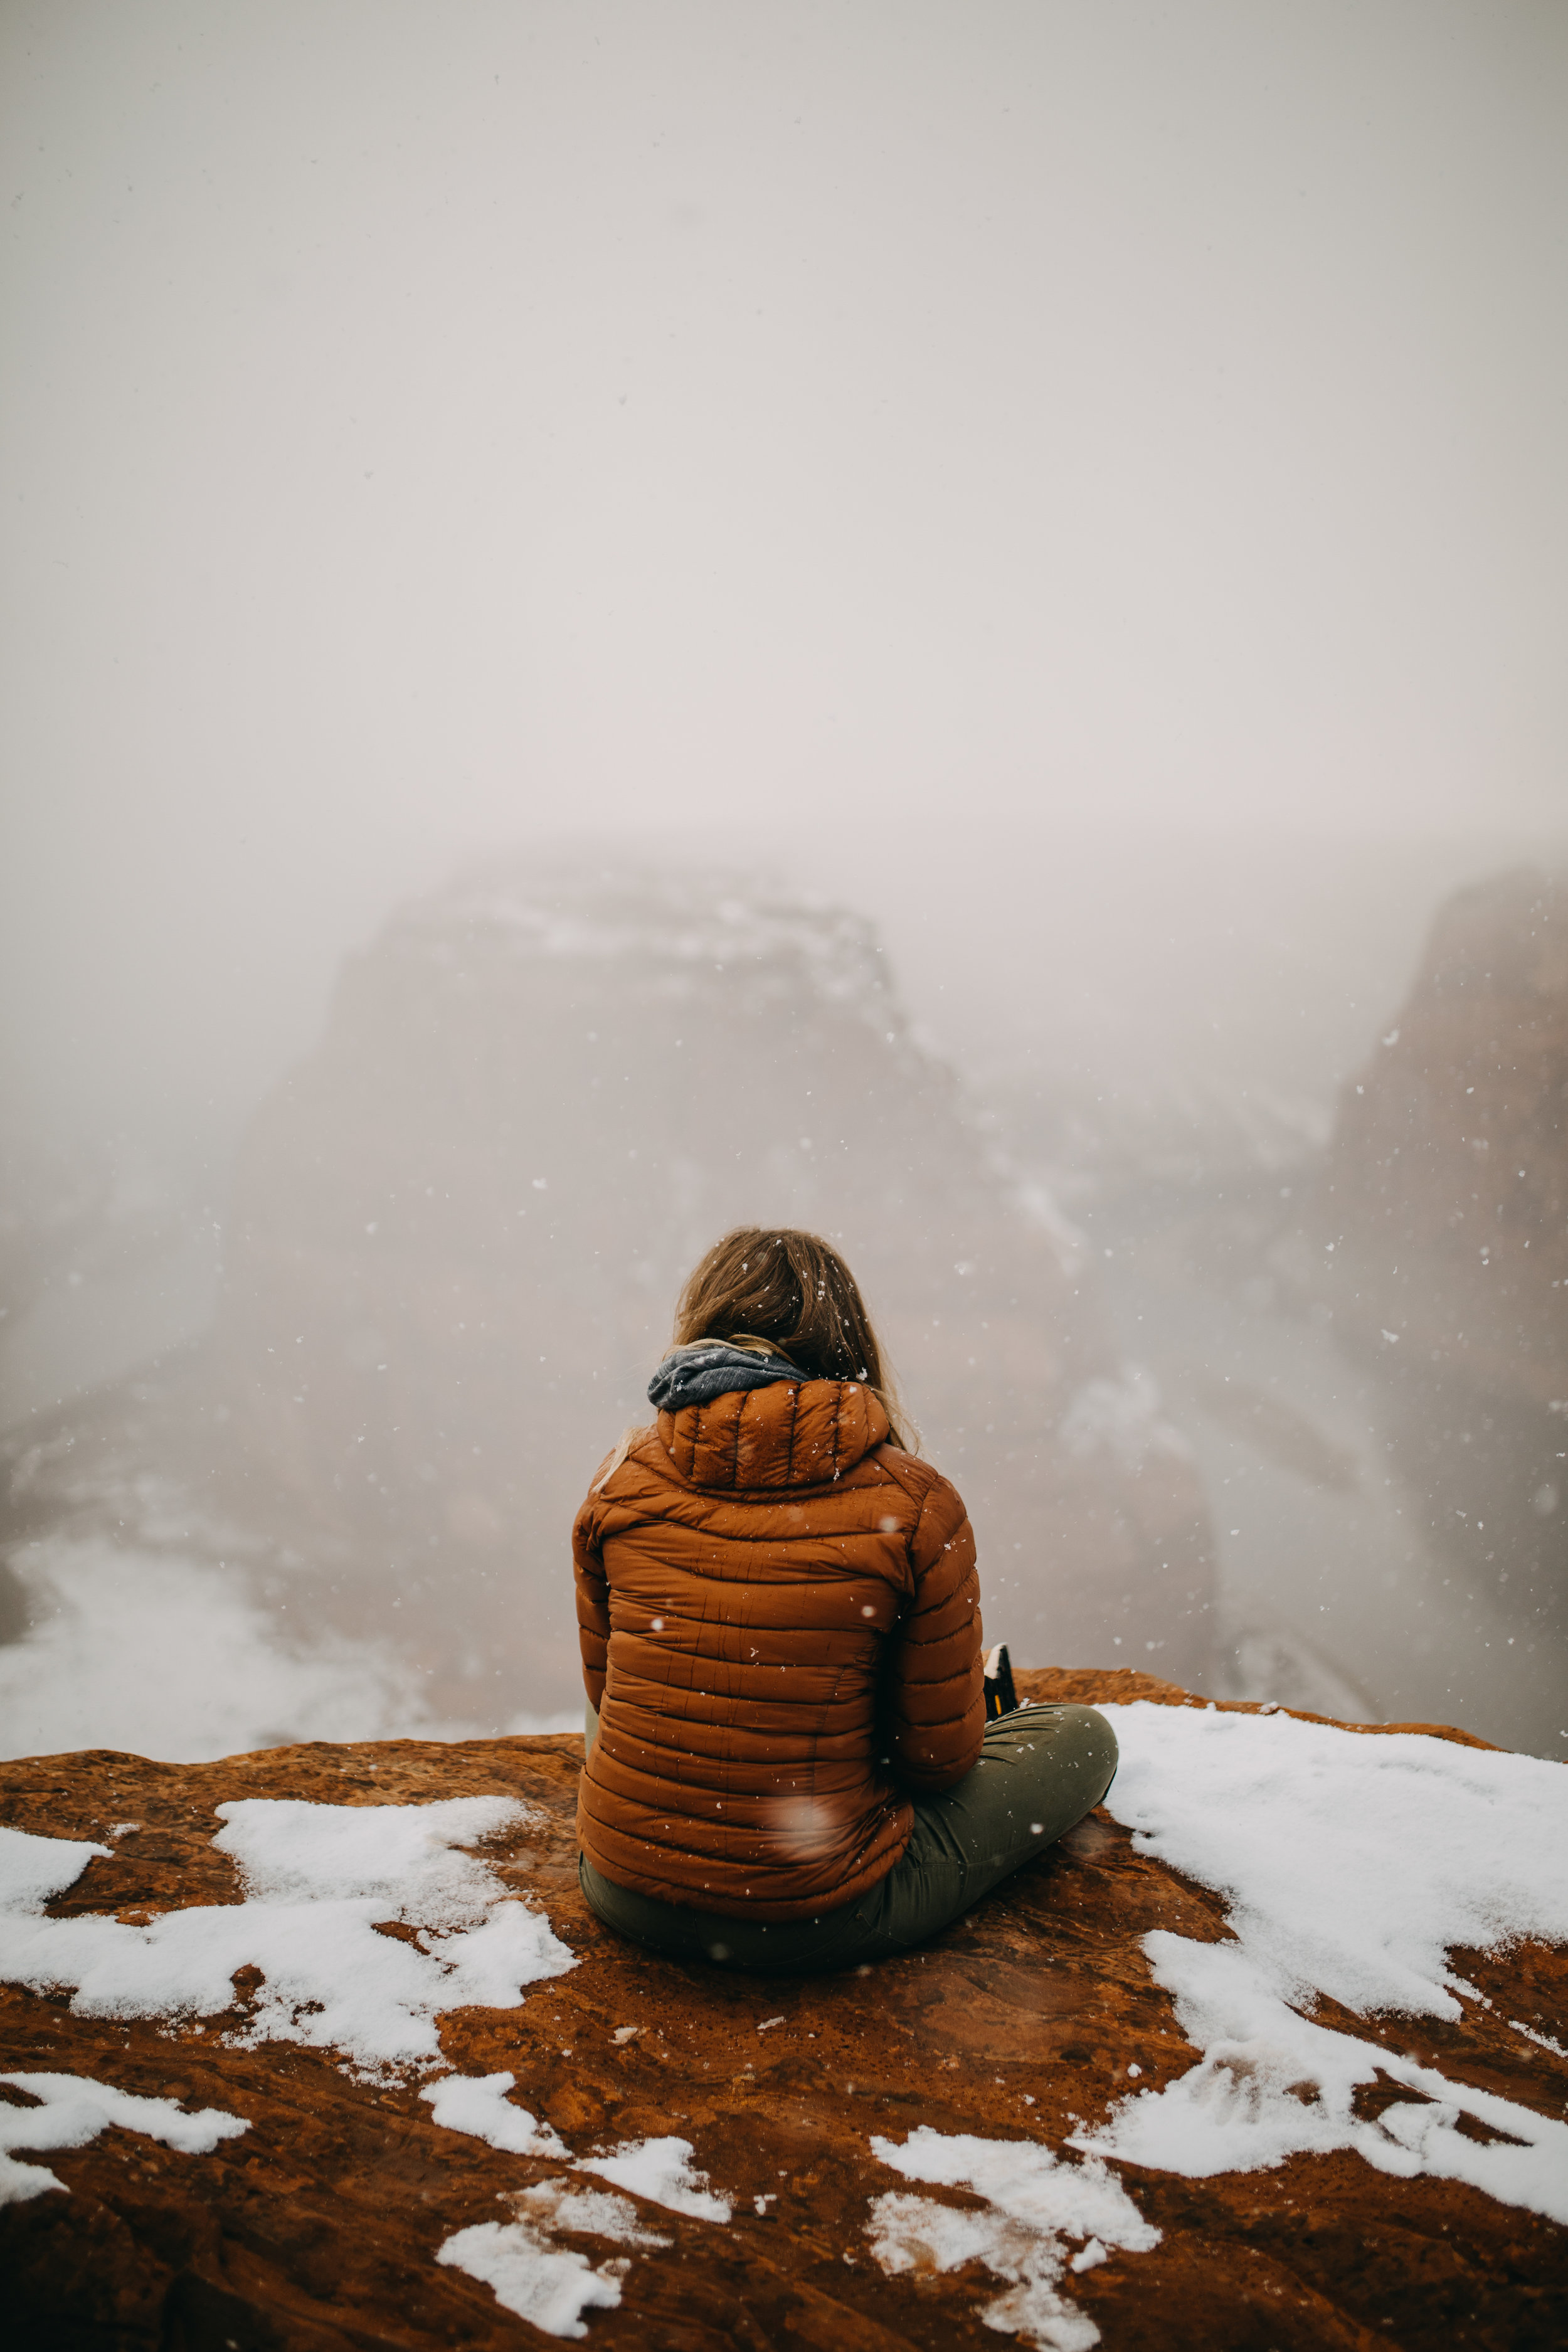 Snowfall at Horseshoe Bend